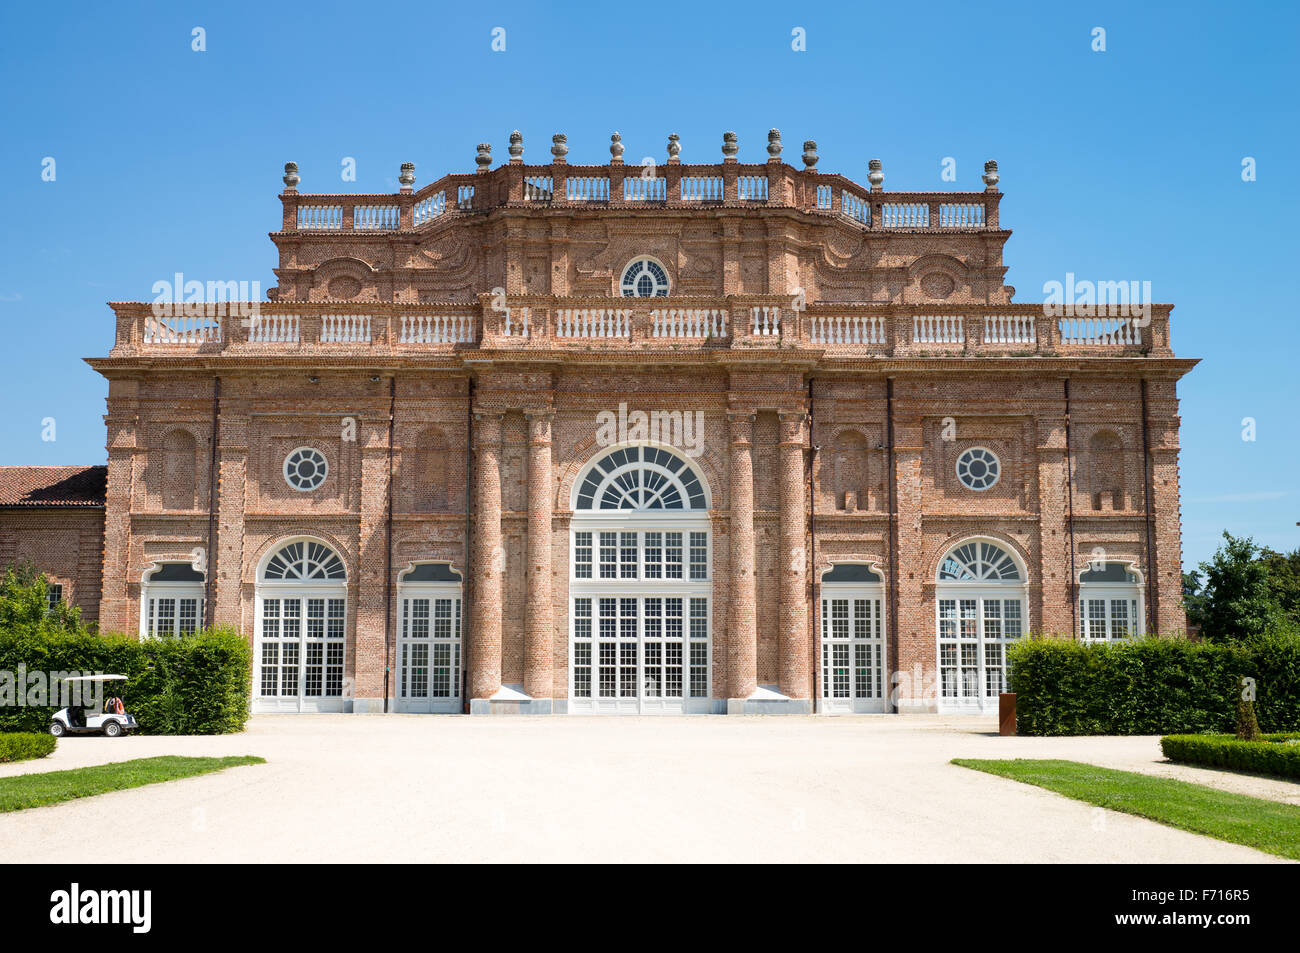 Italy, Venaria, Royal Palace, the main facade of the Juvarriane stables - Stock Image